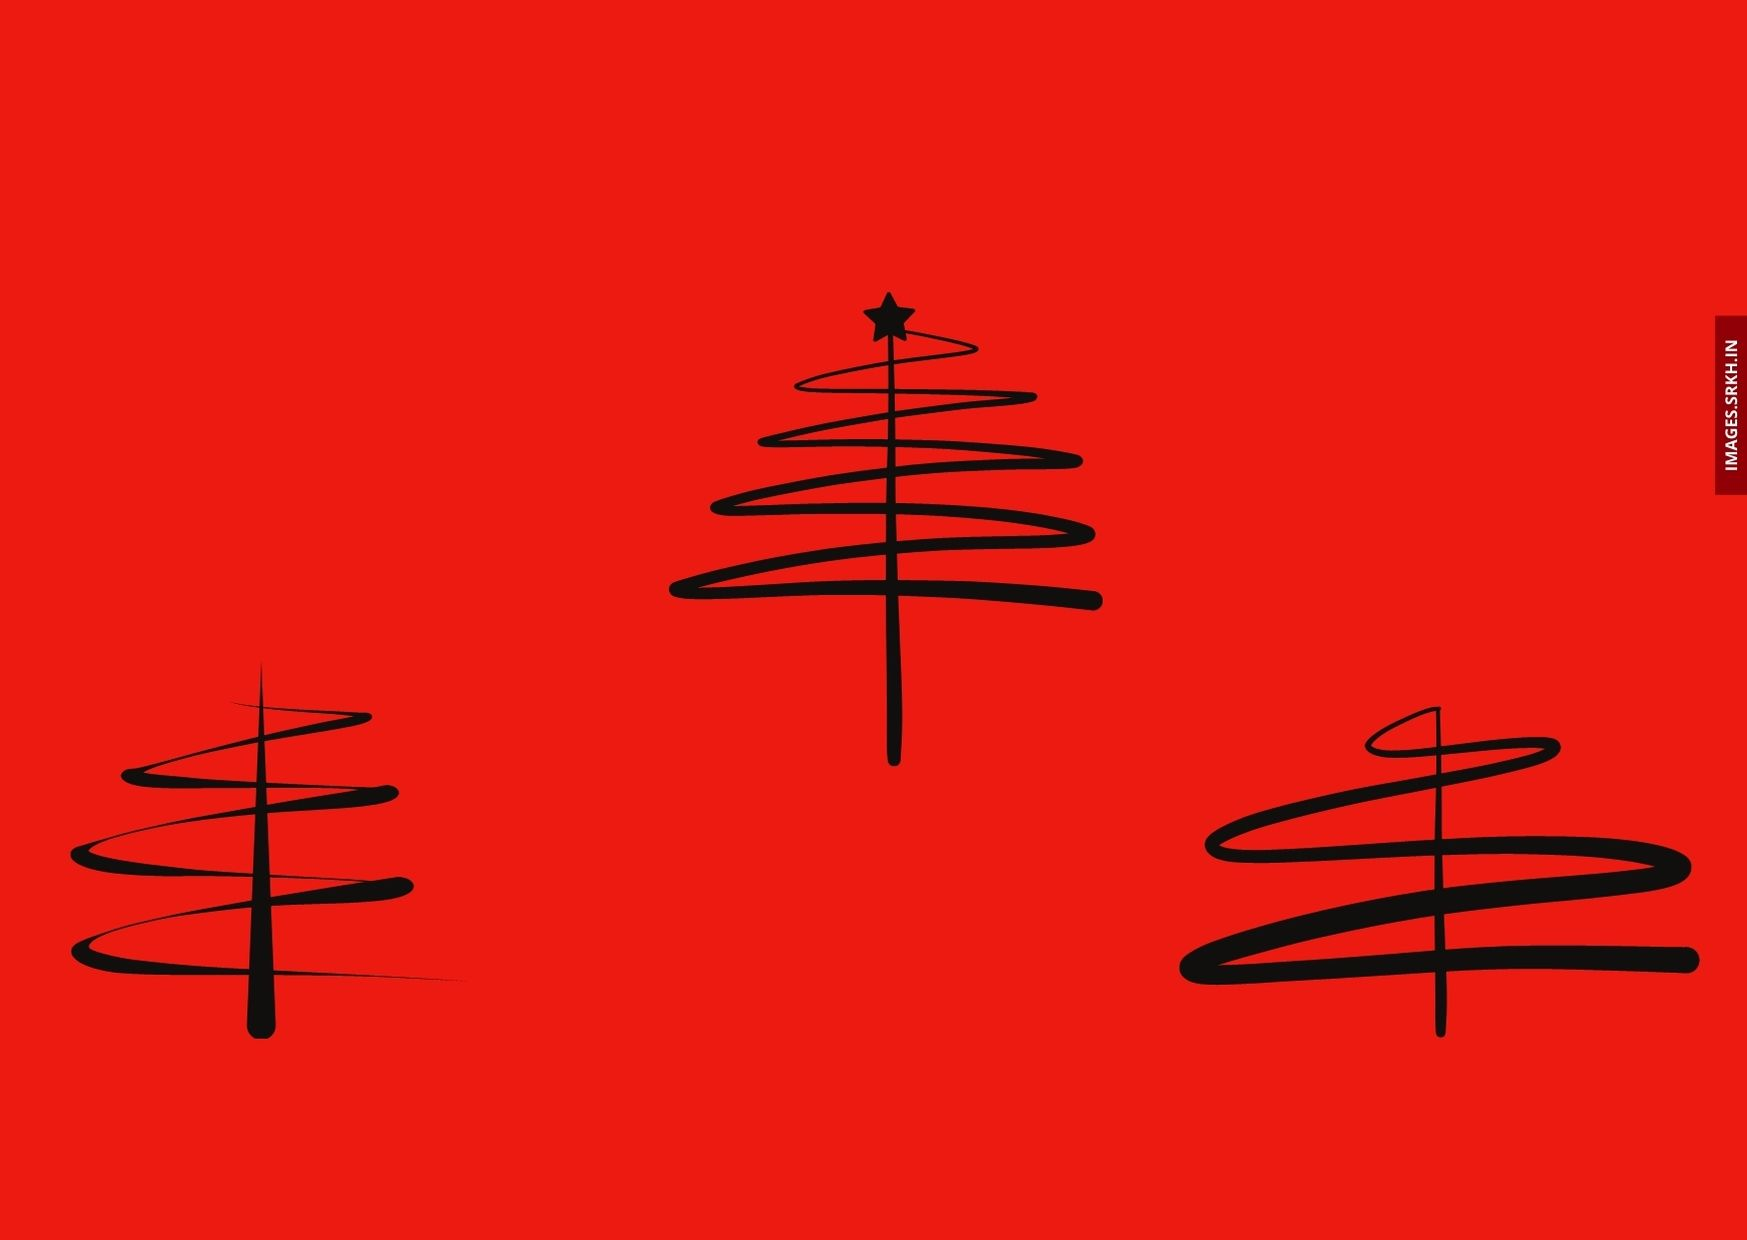 Xmas Tree Outline Images